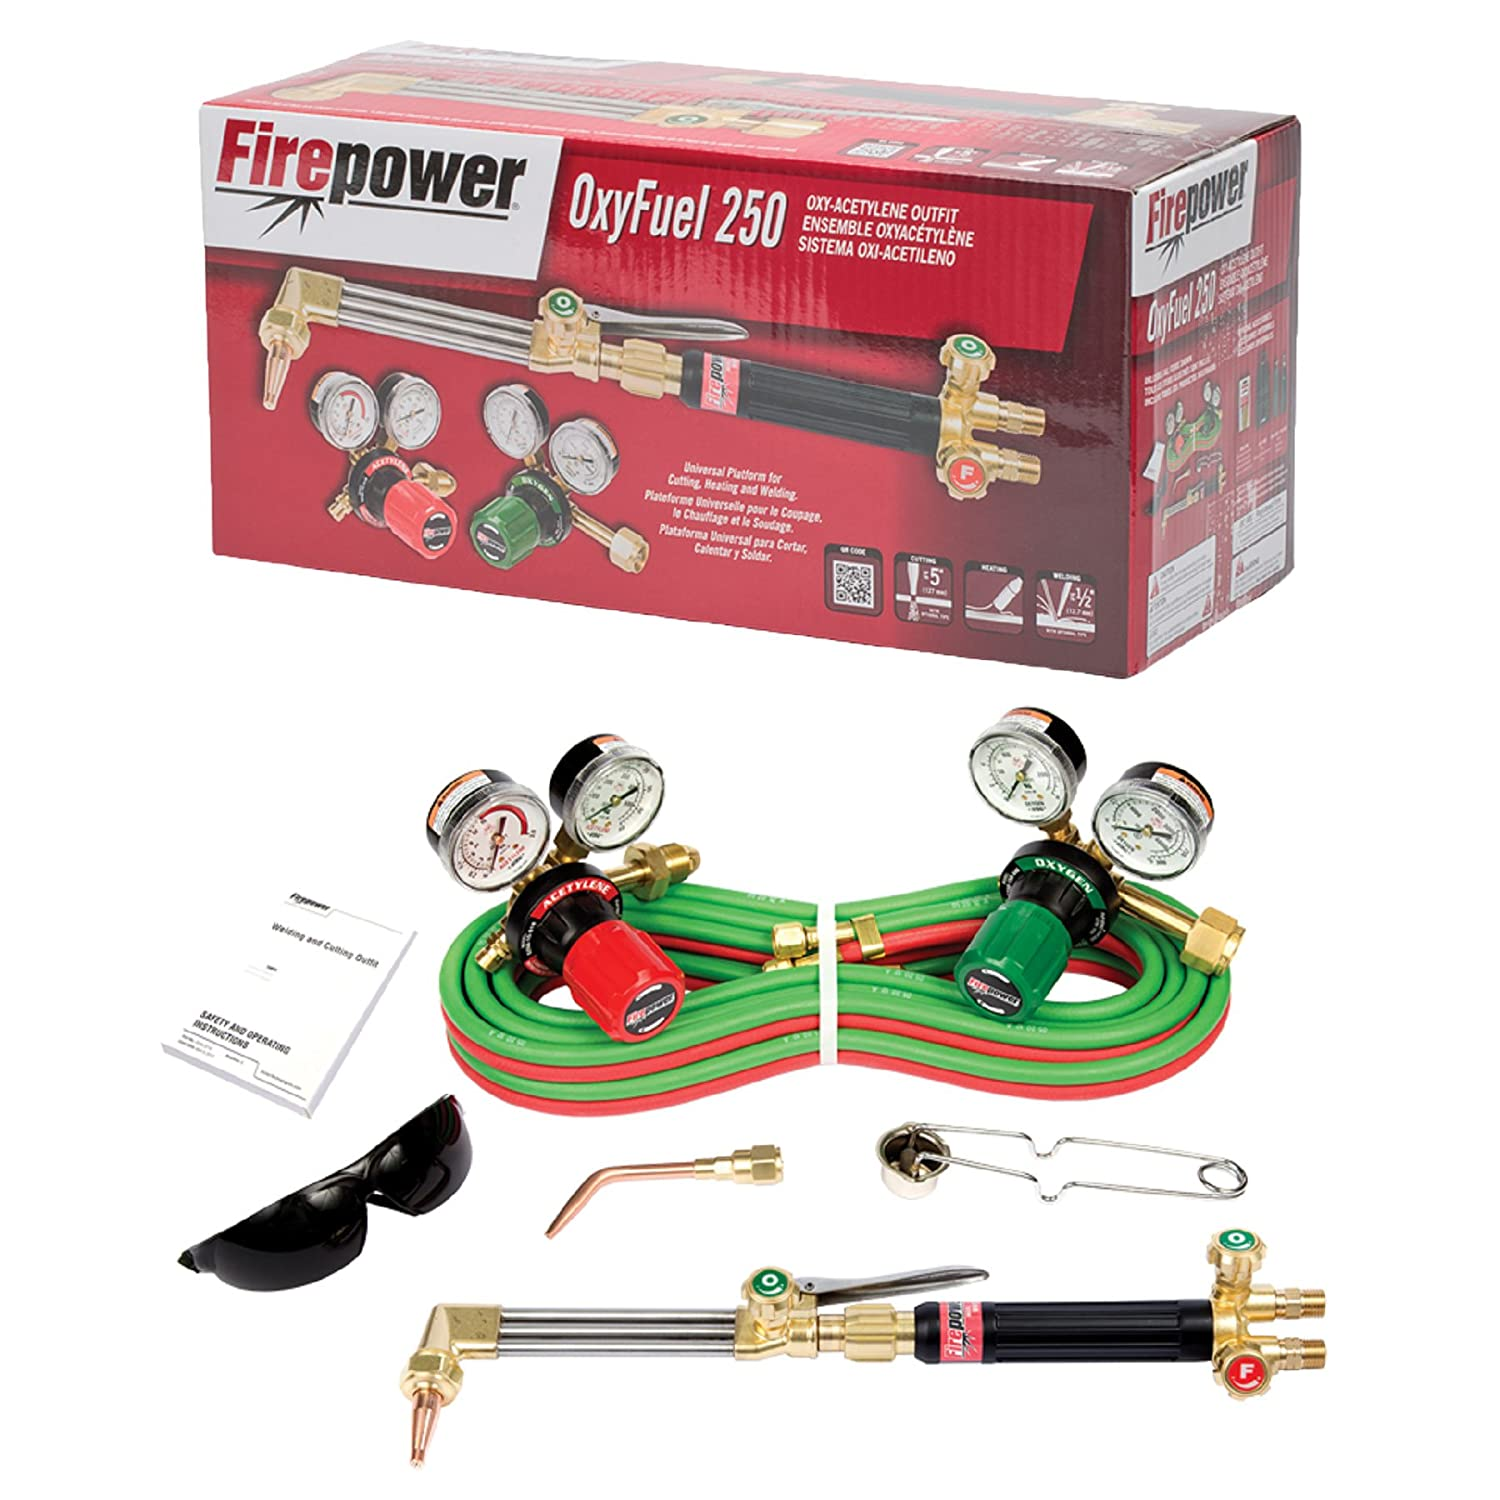 Amazon.com: Firepower 0384-2571 250 Series OxyFuel Medium Duty Acetylene Outfit: Industrial & Scientific